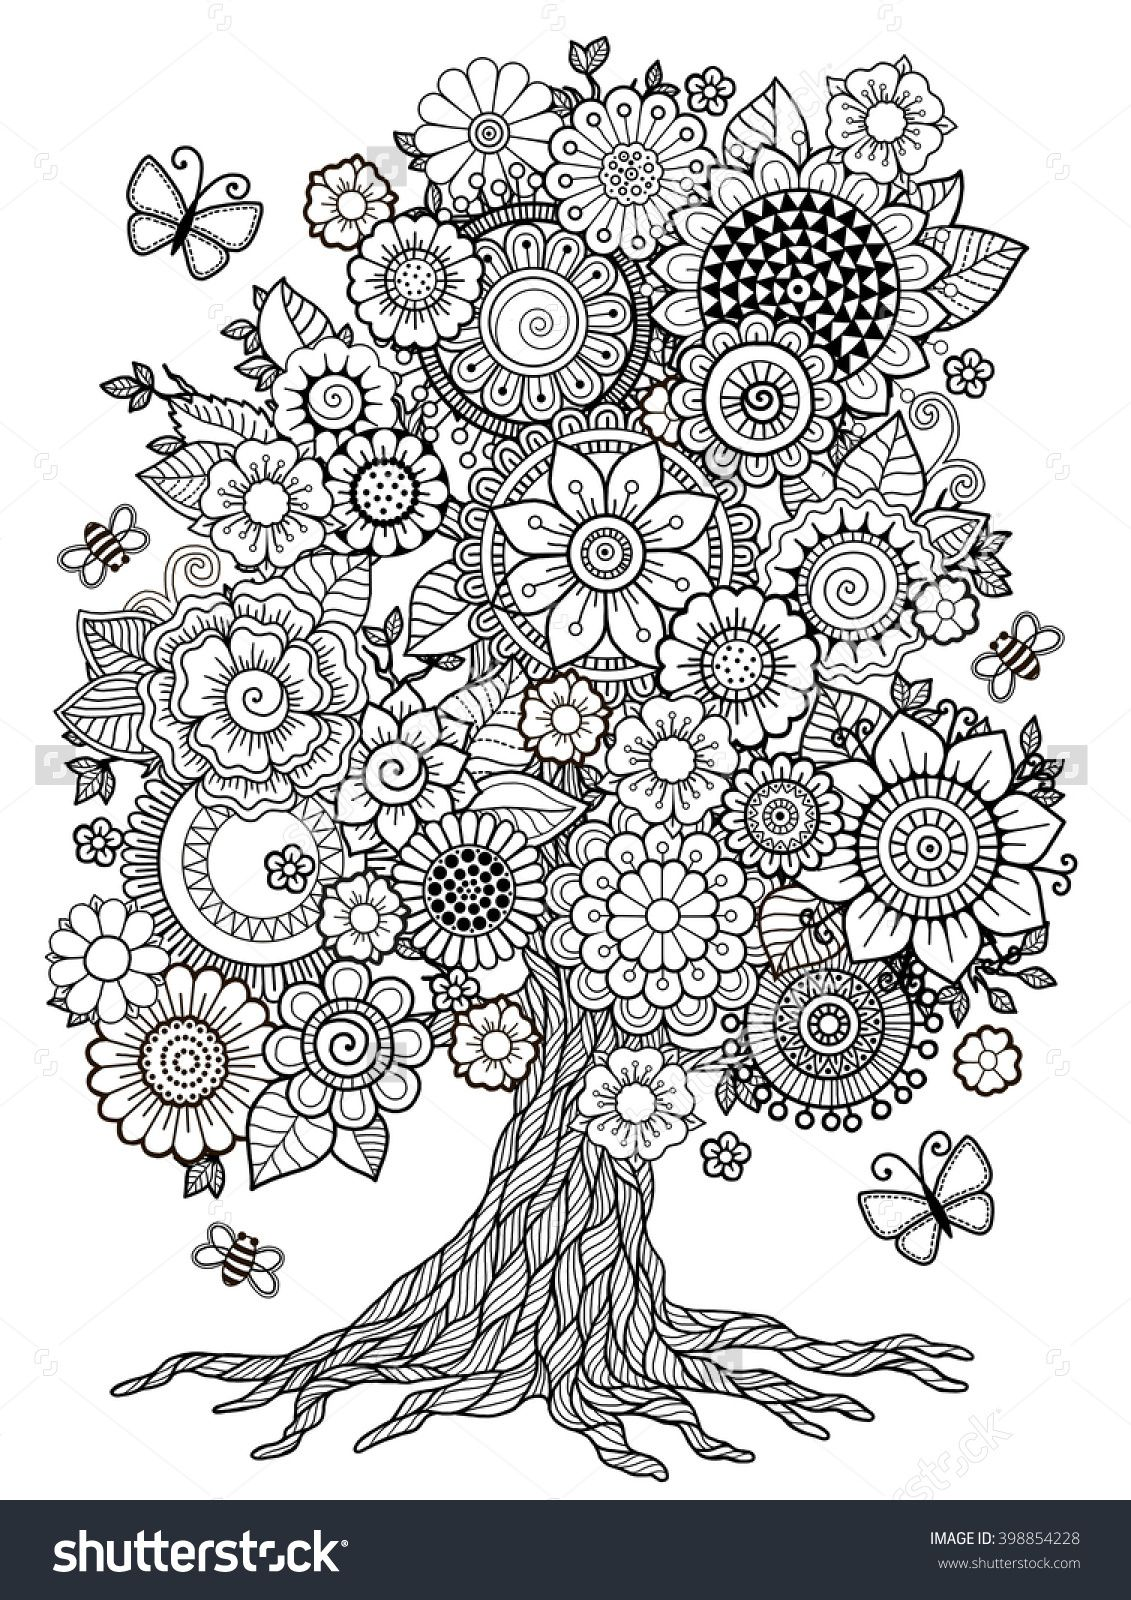 Blossom Tree Coloring Book For Adult Doodles For Meditation